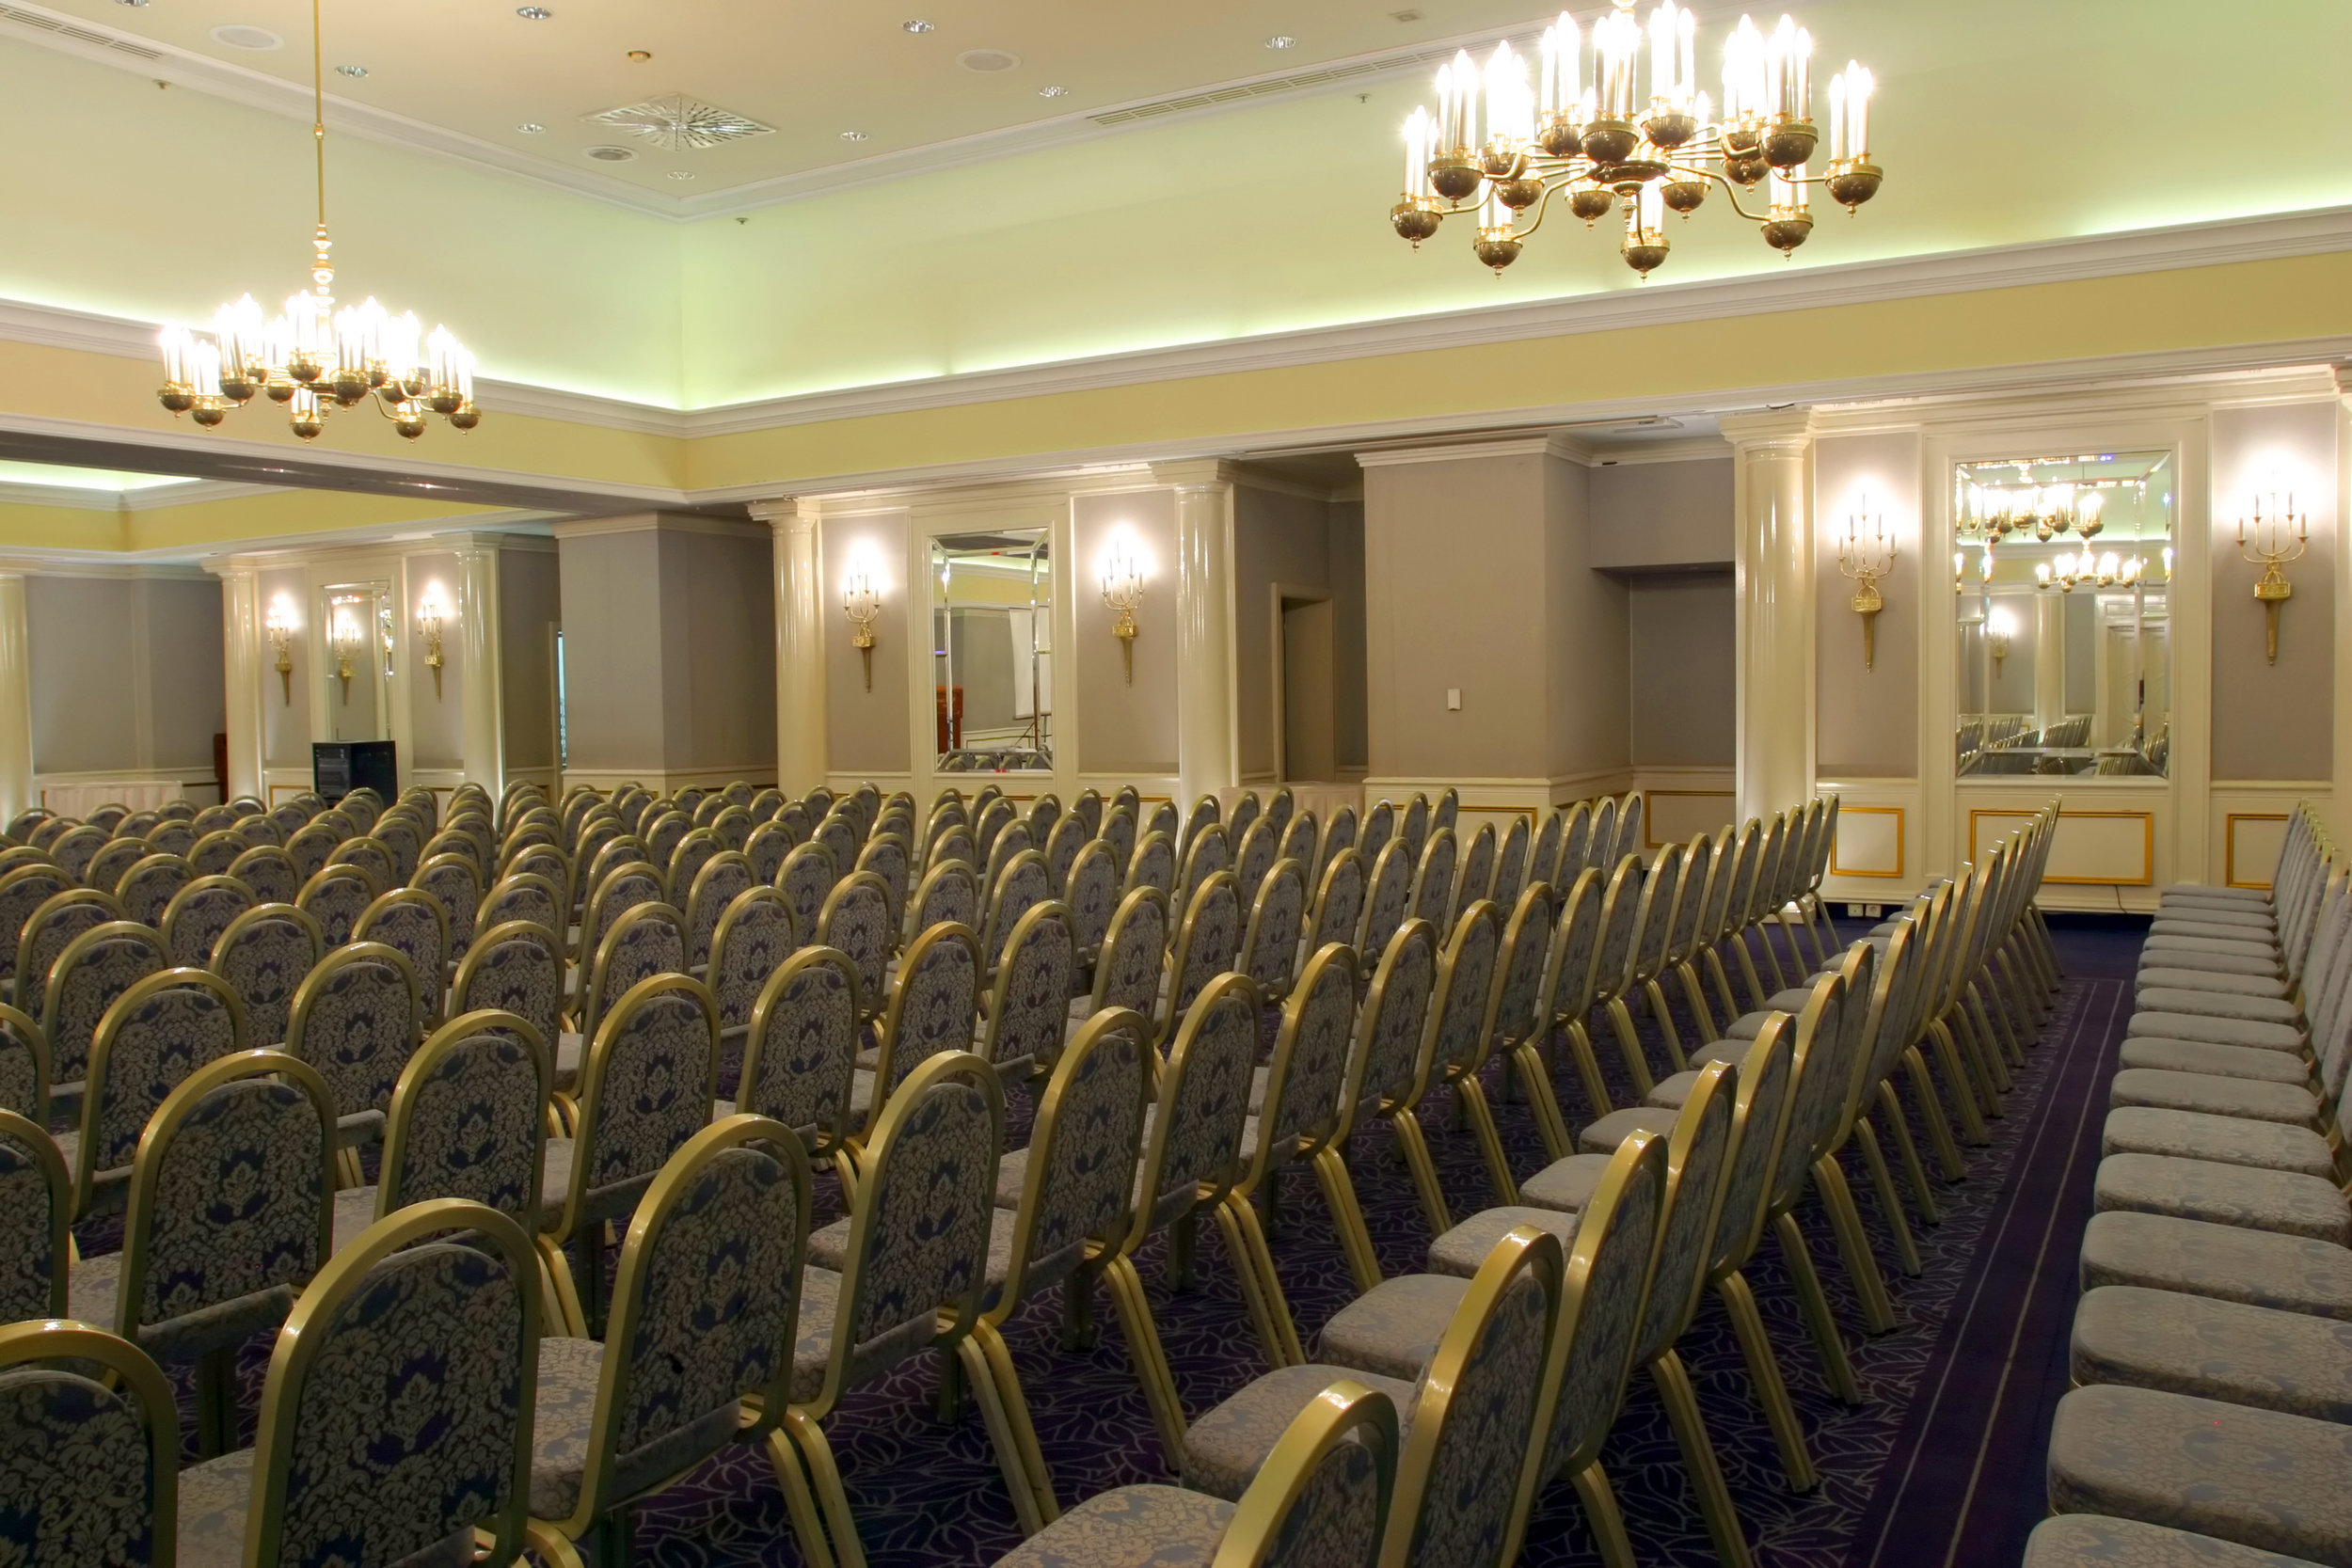 bigstock-Luxurious-conference-room-read-29021435.jpg